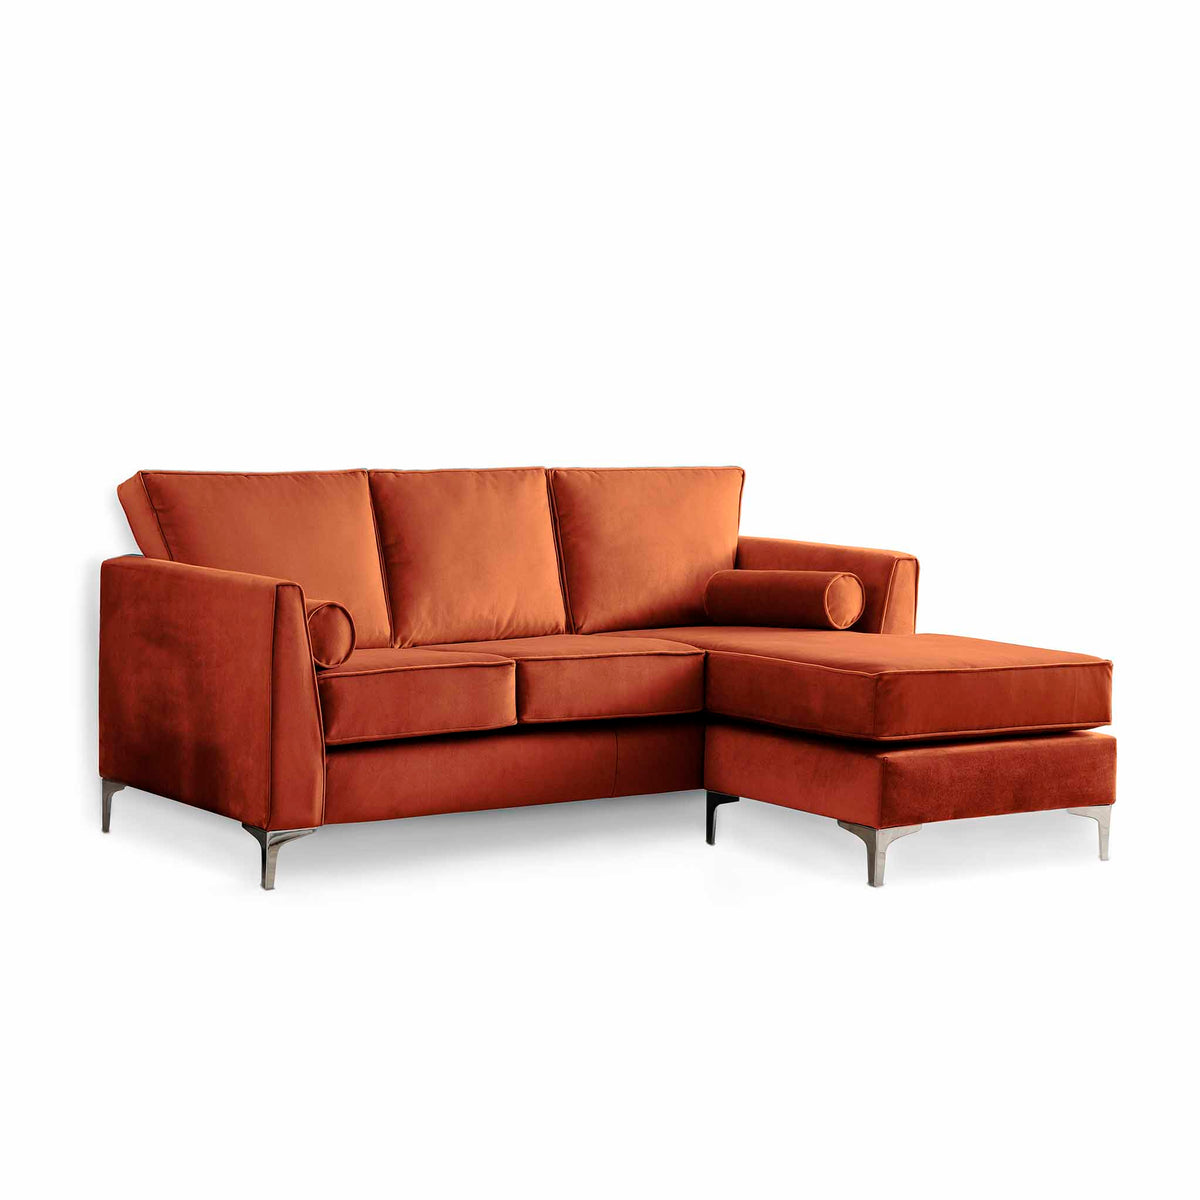 Ikon Reversible Apricot Chaise Corner Sofa by Roseland Furniture